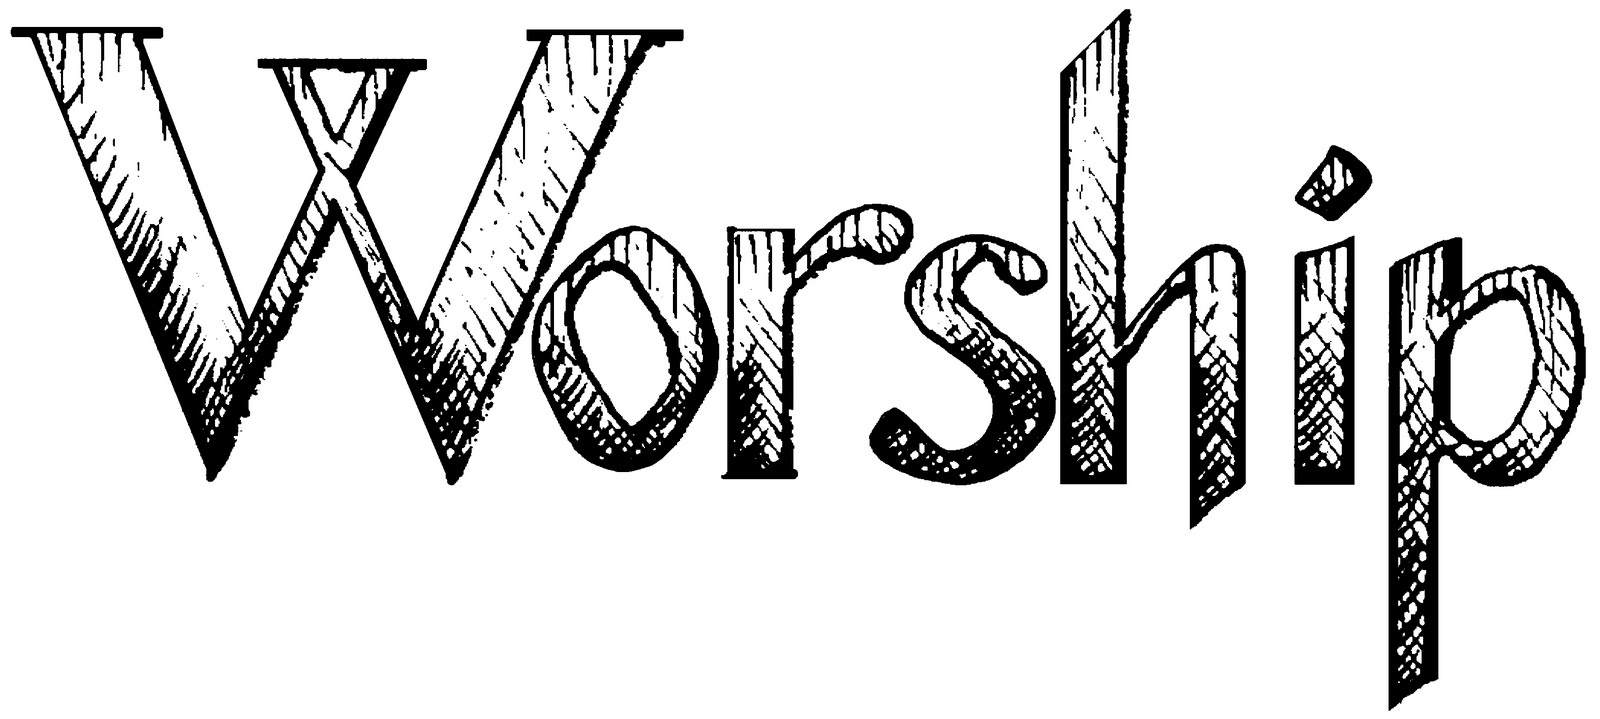 Free Evening Worship Cliparts, Download Free Clip Art